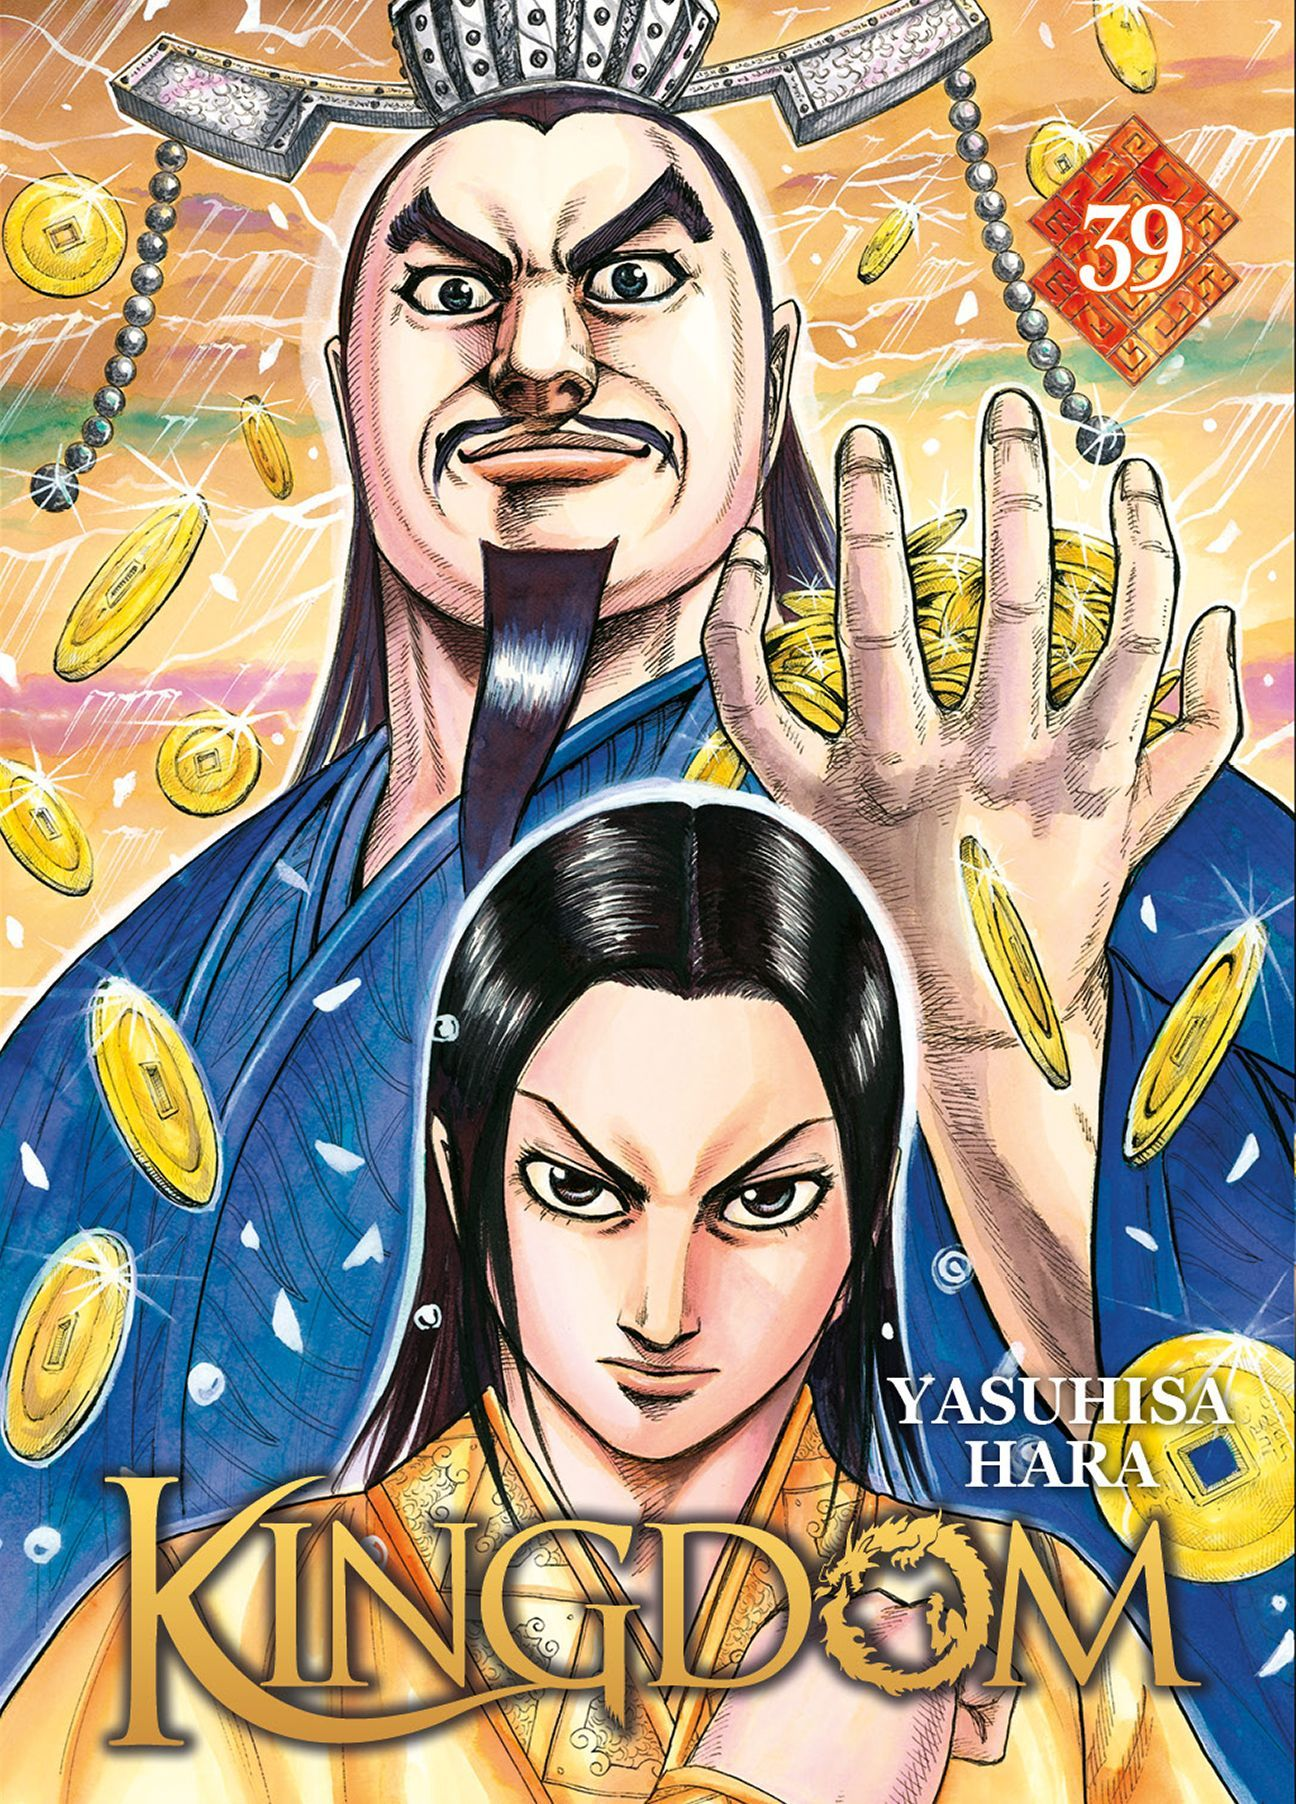 Kingdom Vol.39